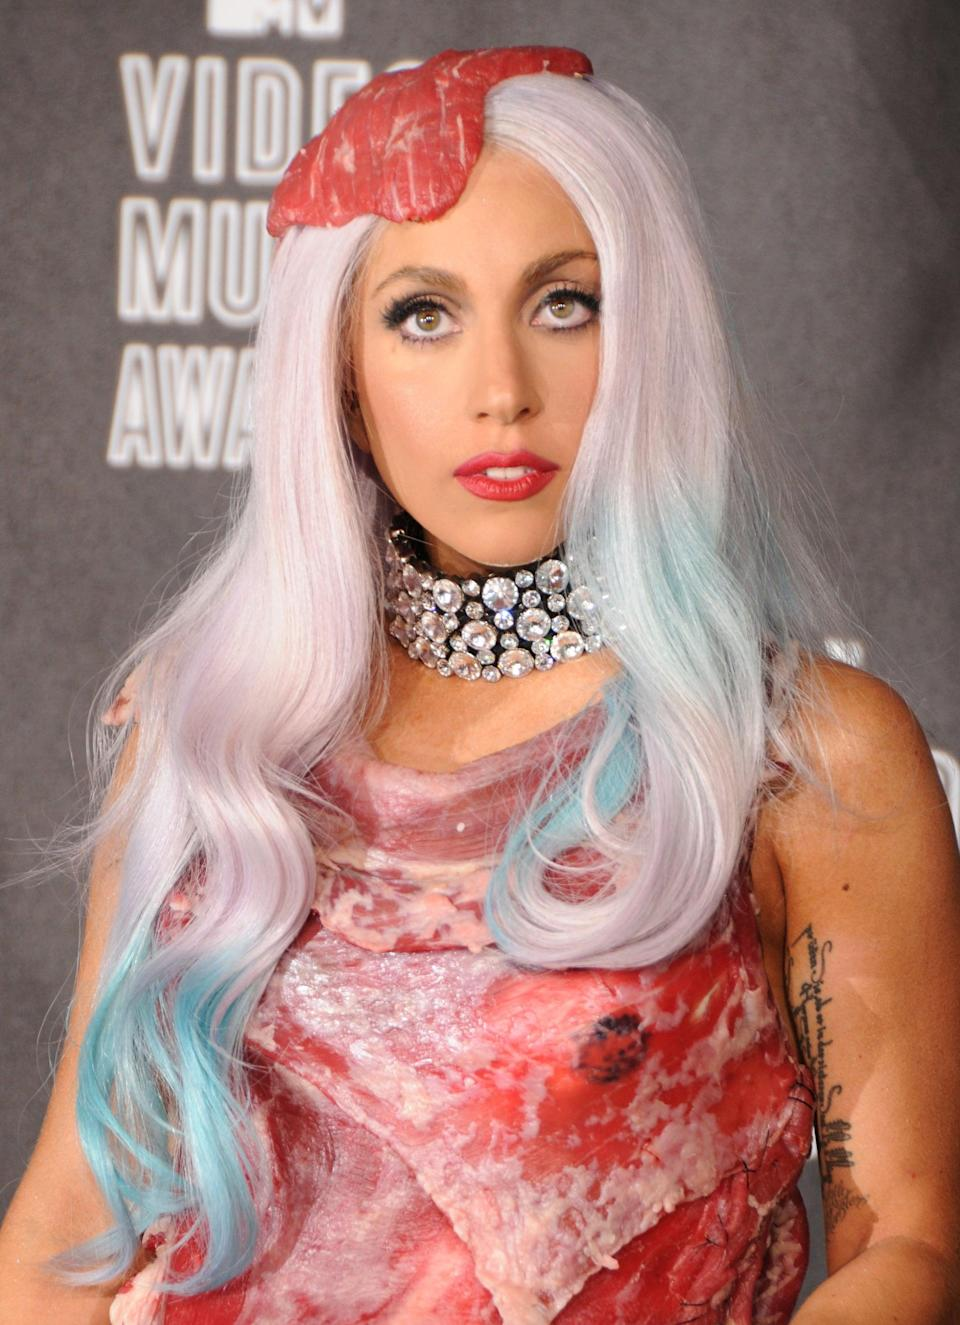 """<p>Who can forget the memorable meat ensemble <a class=""""link rapid-noclick-resp"""" href=""""https://www.popsugar.com/Lady-Gaga"""" rel=""""nofollow noopener"""" target=""""_blank"""" data-ylk=""""slk:Lady Gaga"""">Lady Gaga</a> wore to the 2010 MTV VMAs? This look will work best if you spray your hair in a silvery-white color and wear it in loose curls. To make it all the more authentic, add a splash of turquoise spots throughout. </p>"""